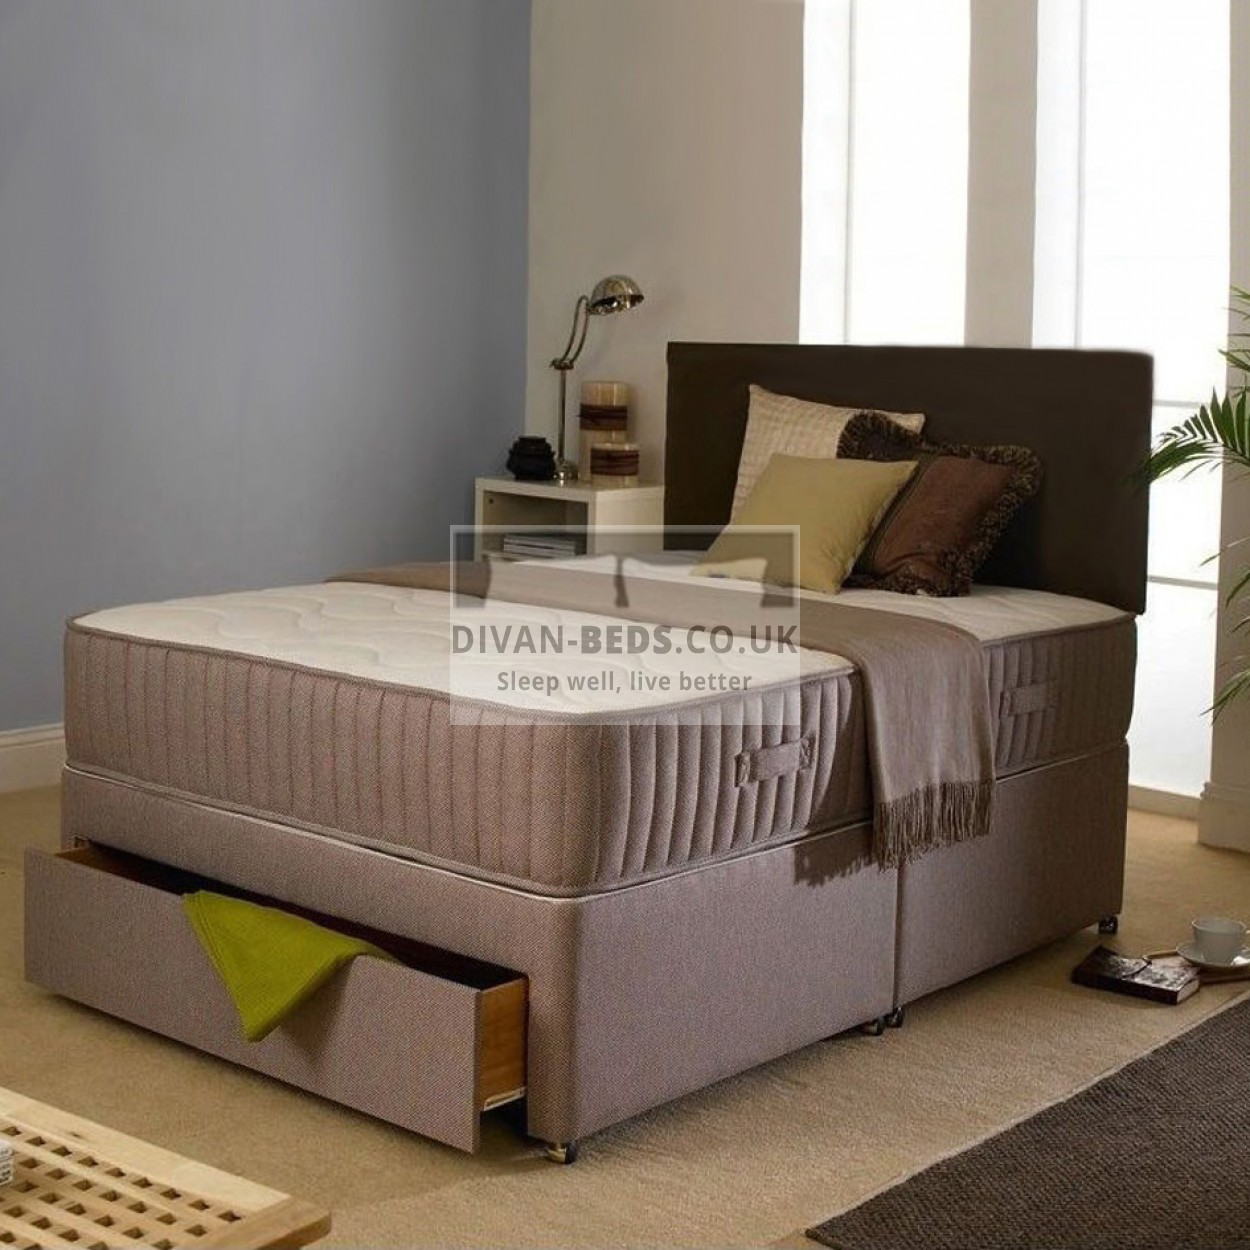 Malcolm Divan Bed With Orthopaedic Spring Mattress Guaranteed Cheapest Free Fast Delivery